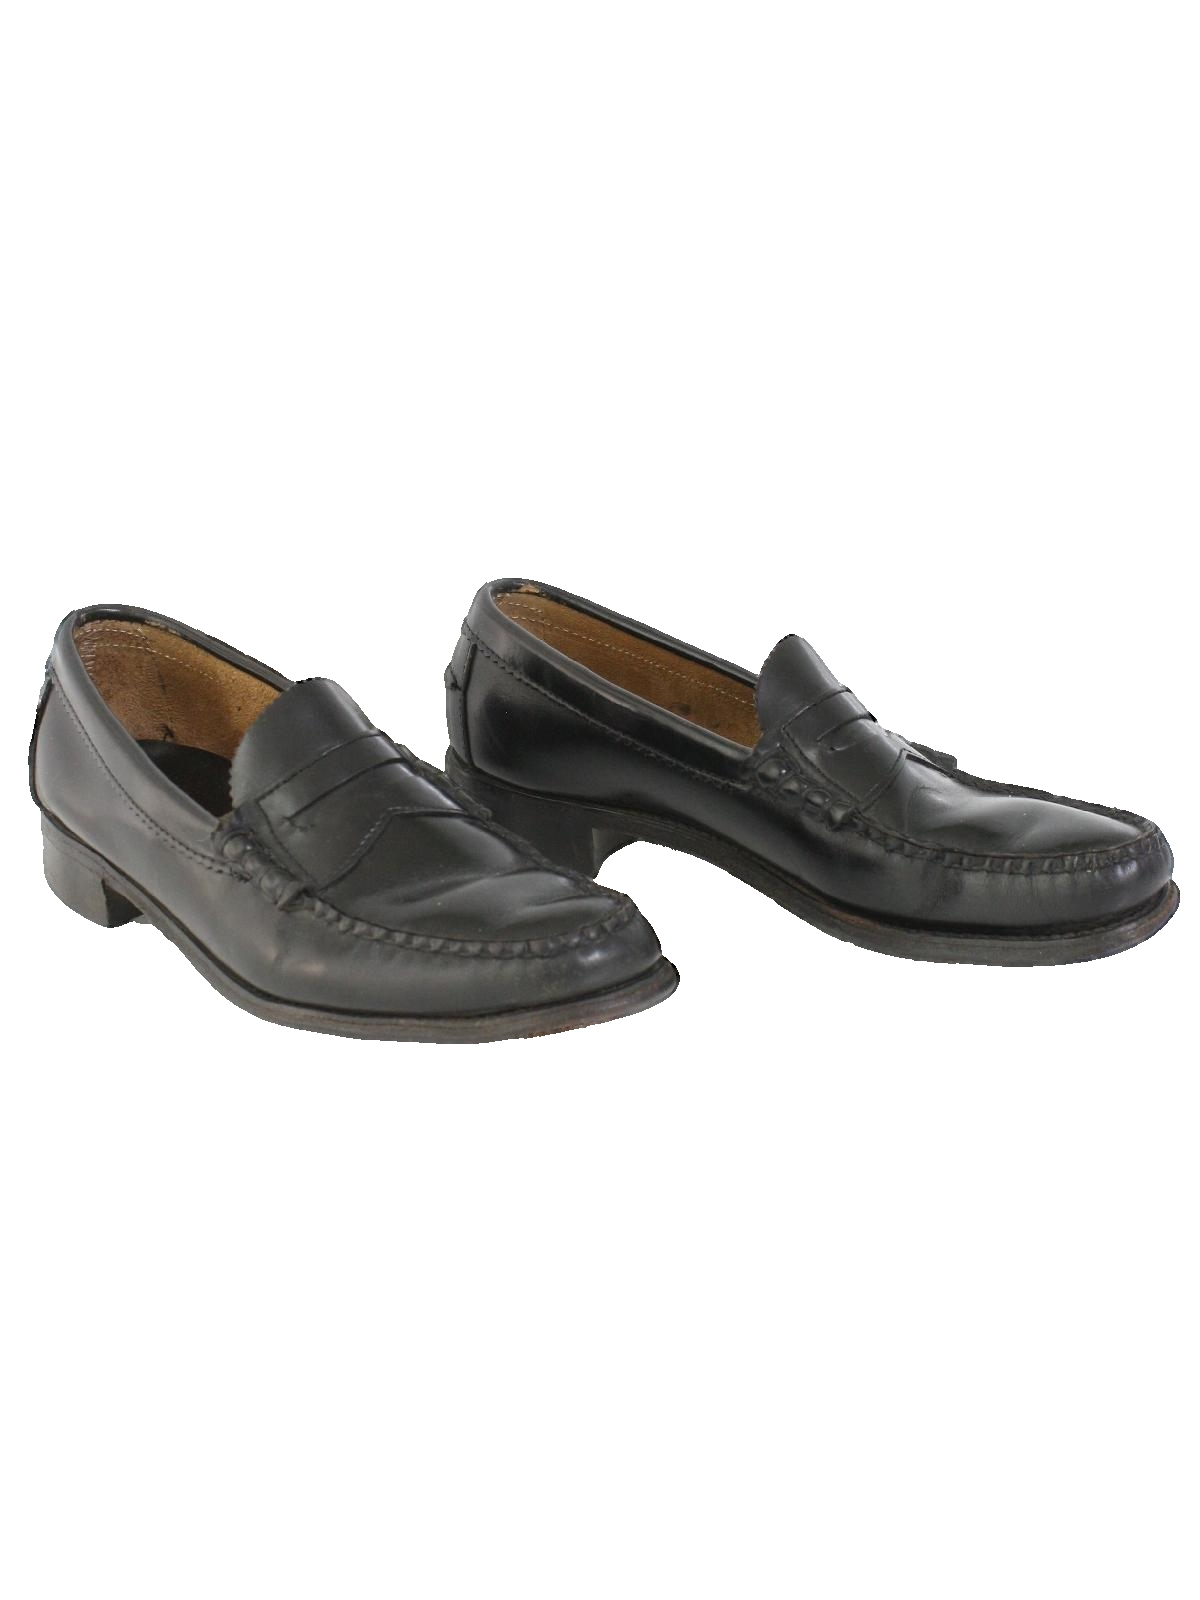 1980's Dexter Mens Leather Penny Loafer Shoes